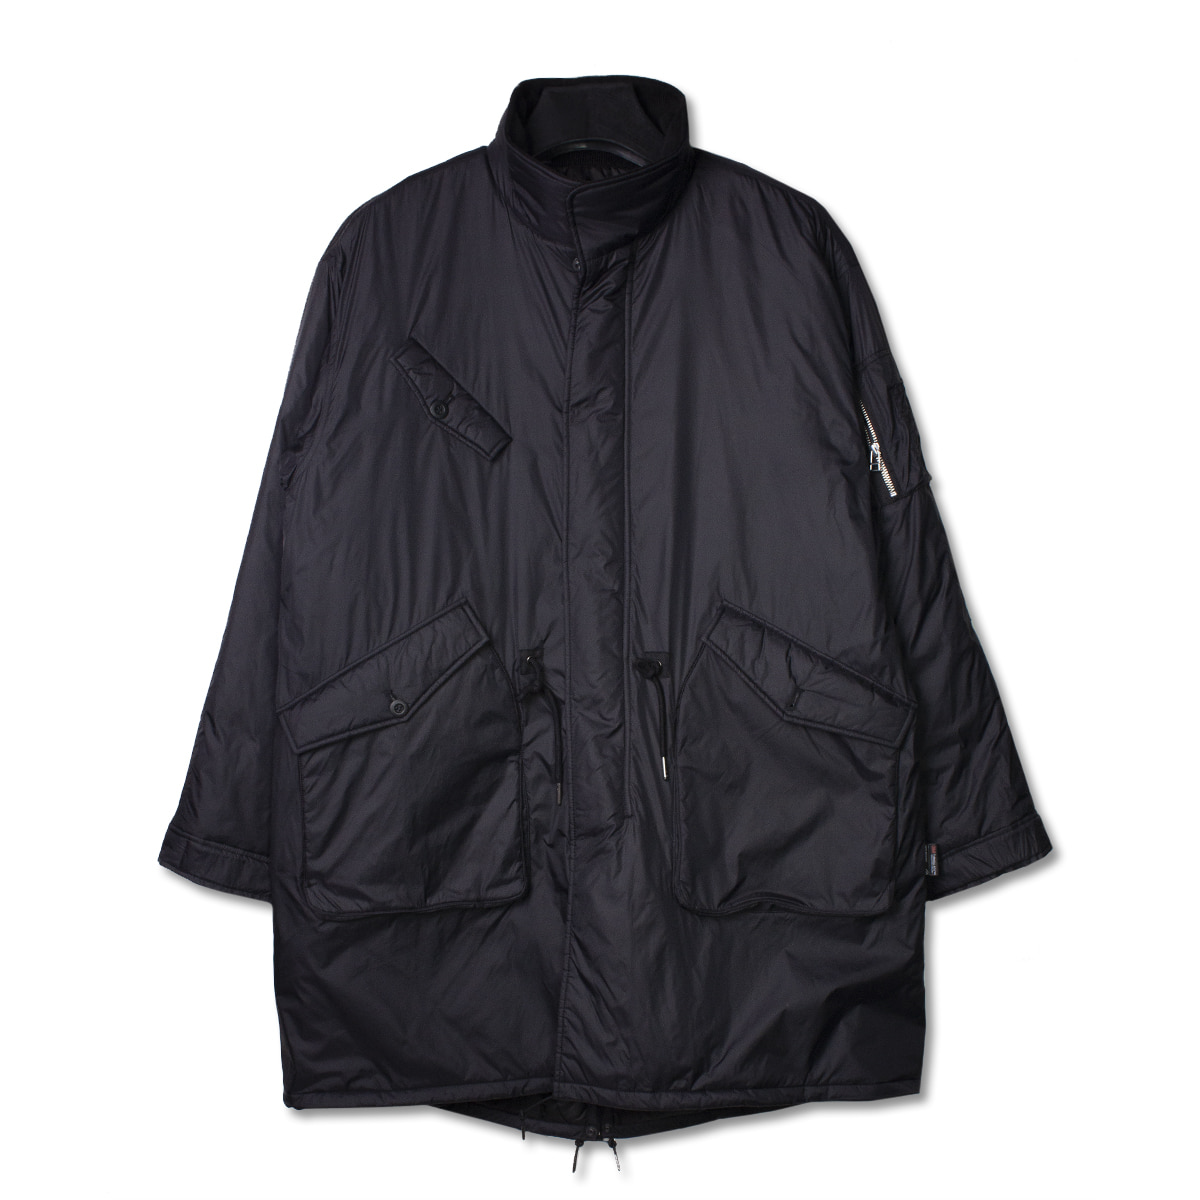 [8DIVISION] M51 FISHTAIL PARKA 'BLACK'